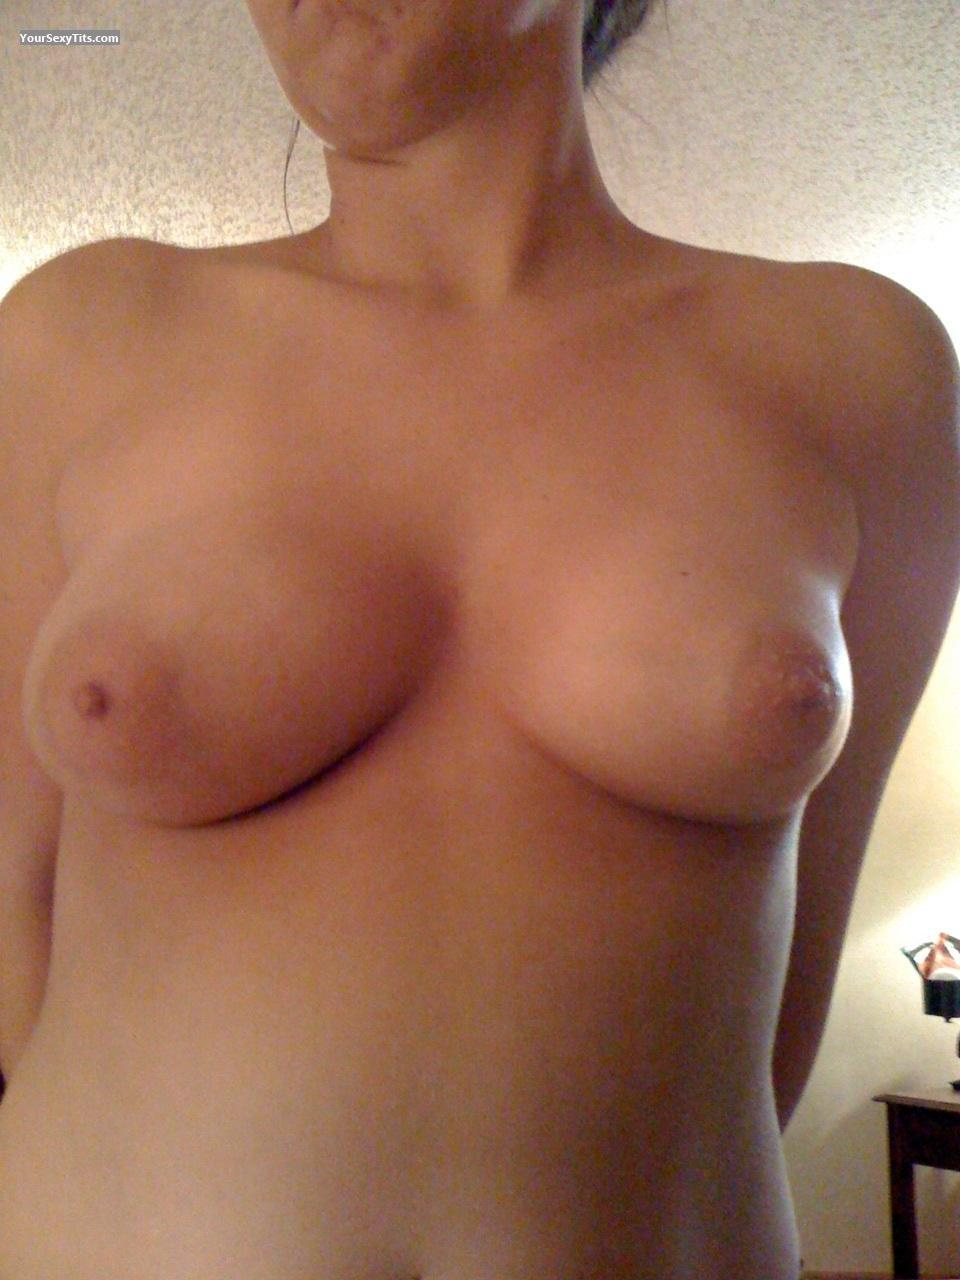 Tit Flash: Small Tits - Coll from United States